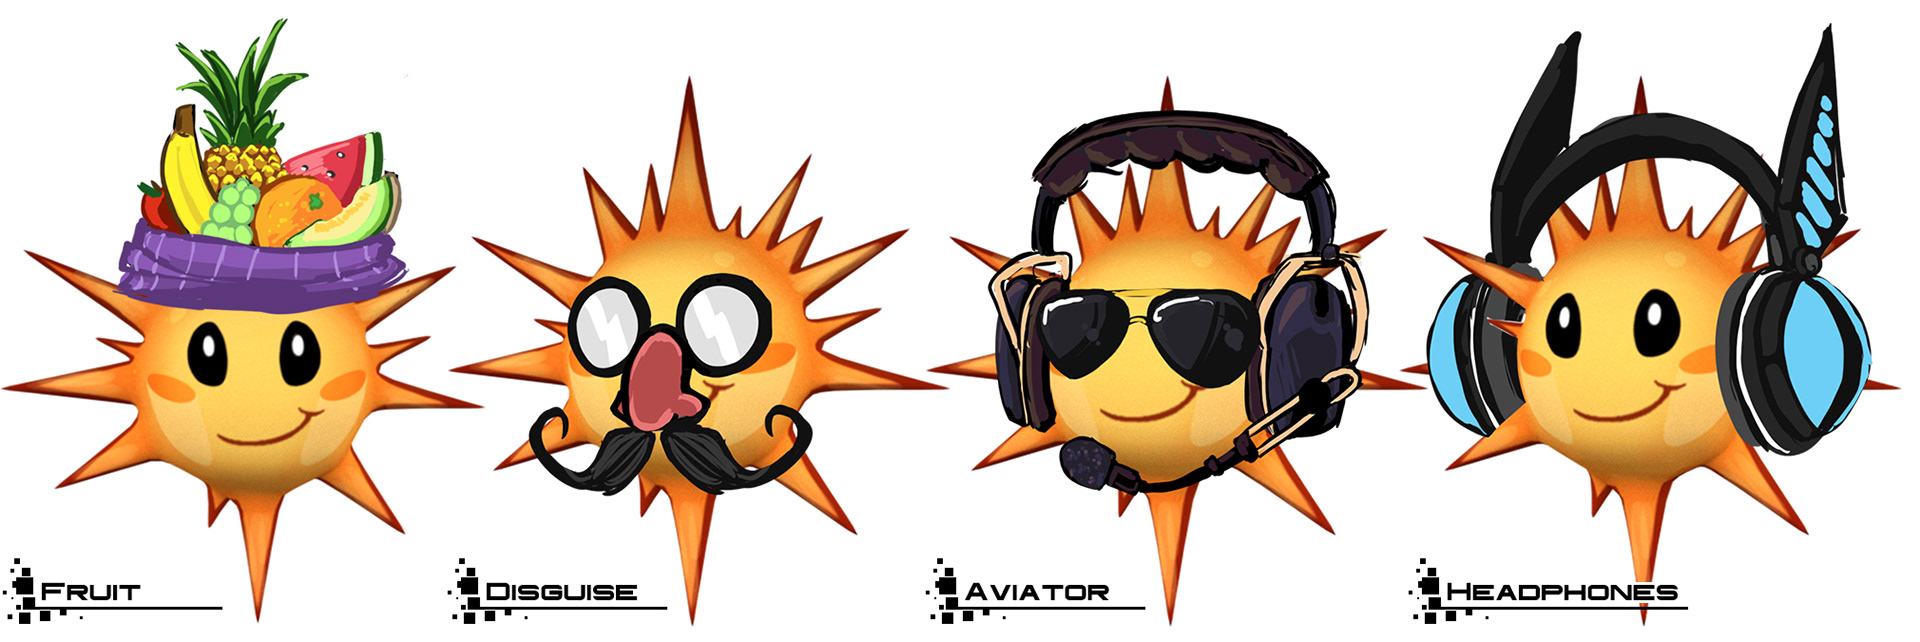 Battery Boy Sun Fruit Dsiguise Aviator and Headphones